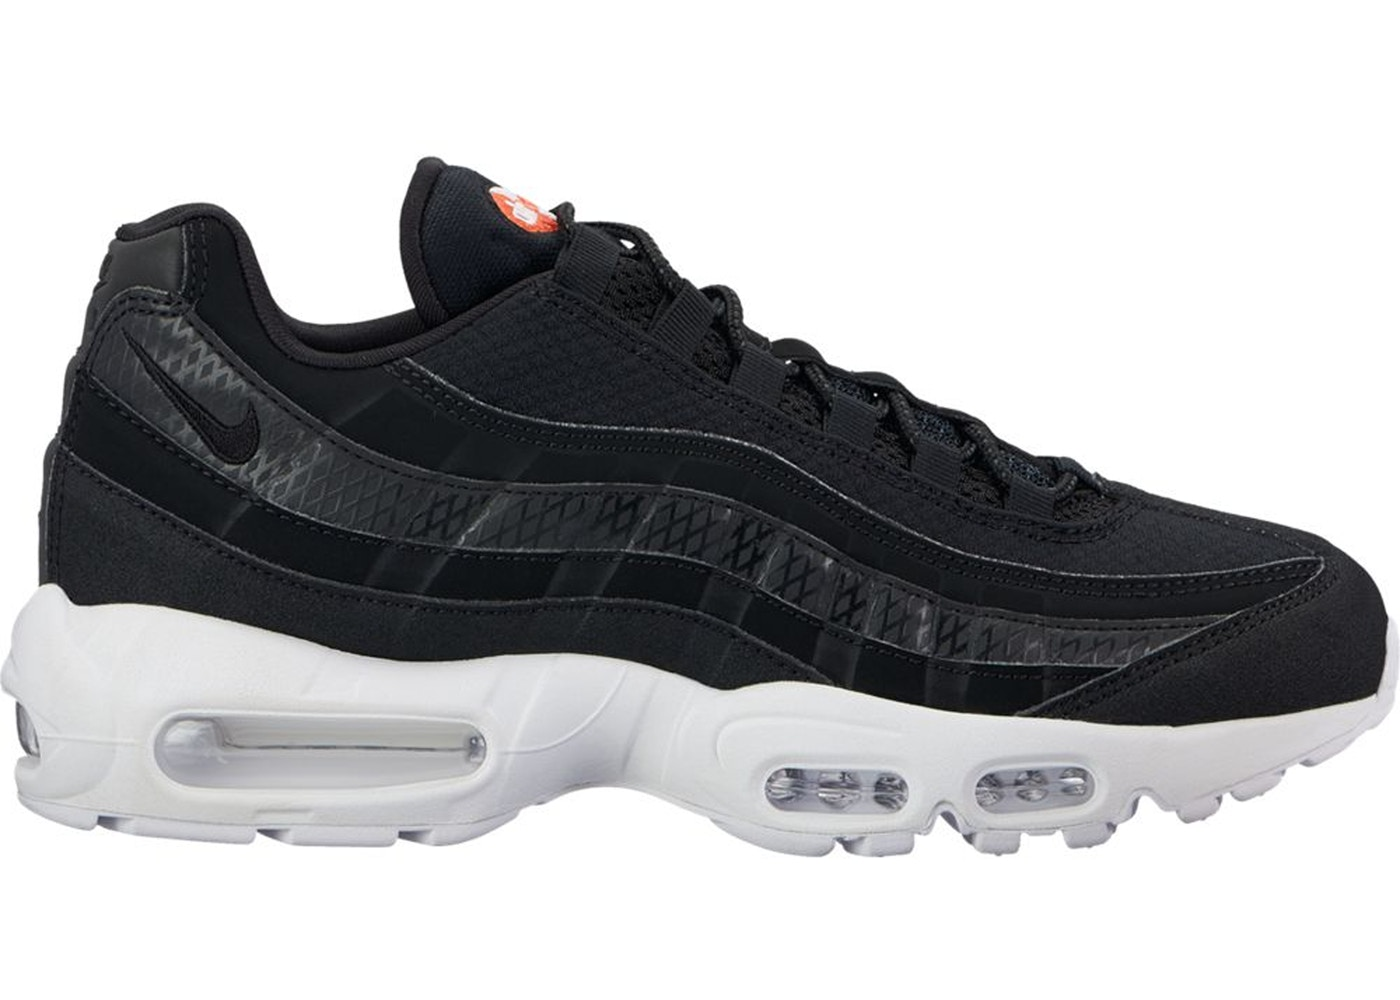 get online 50% price usa cheap sale Air Max 95 Black White Team Orange